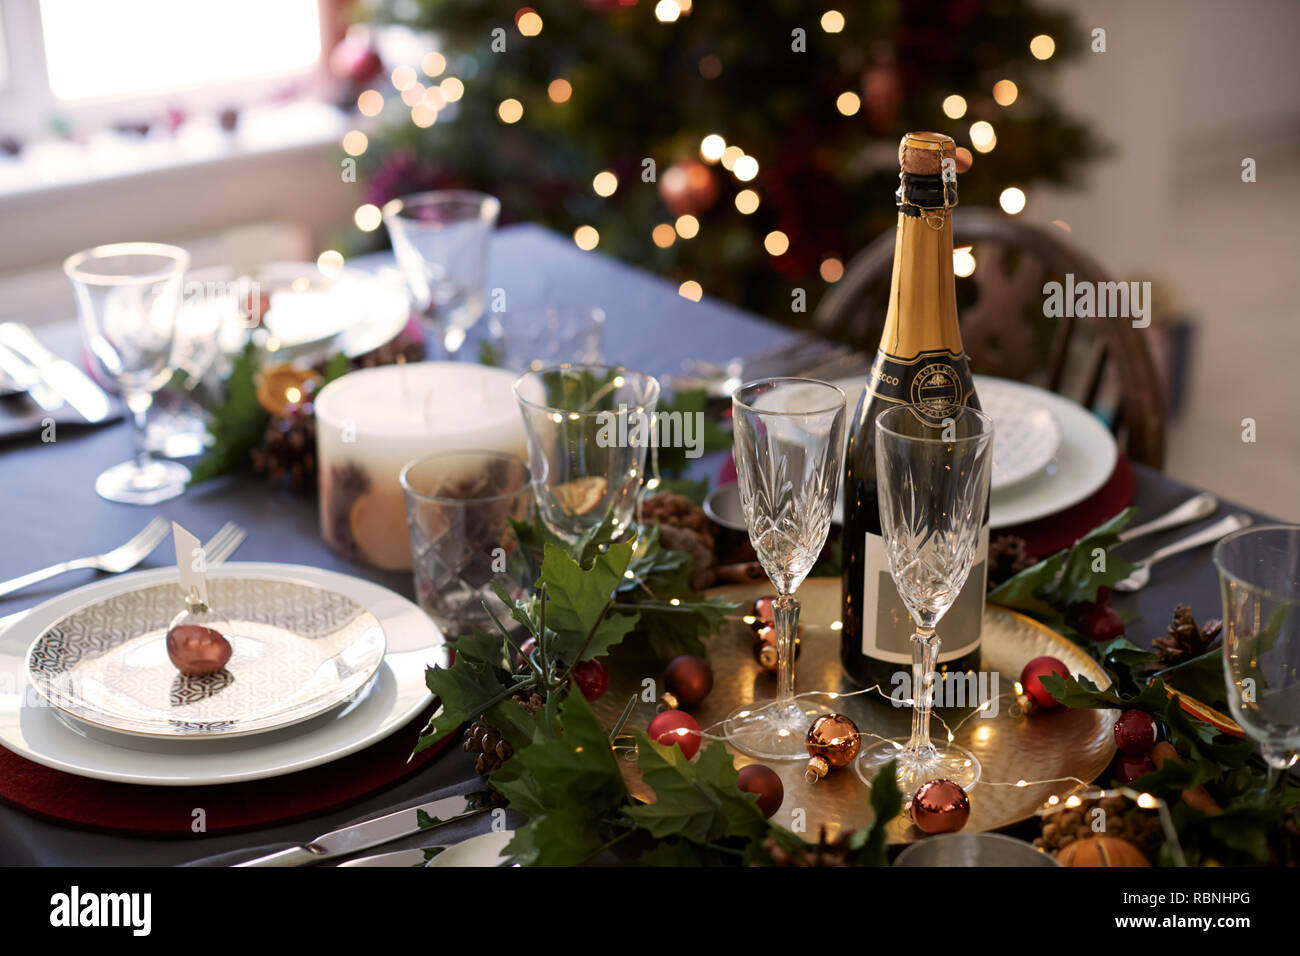 Christmas Table Settings.Christmas Table Setting With Glasses And A Bottle Of